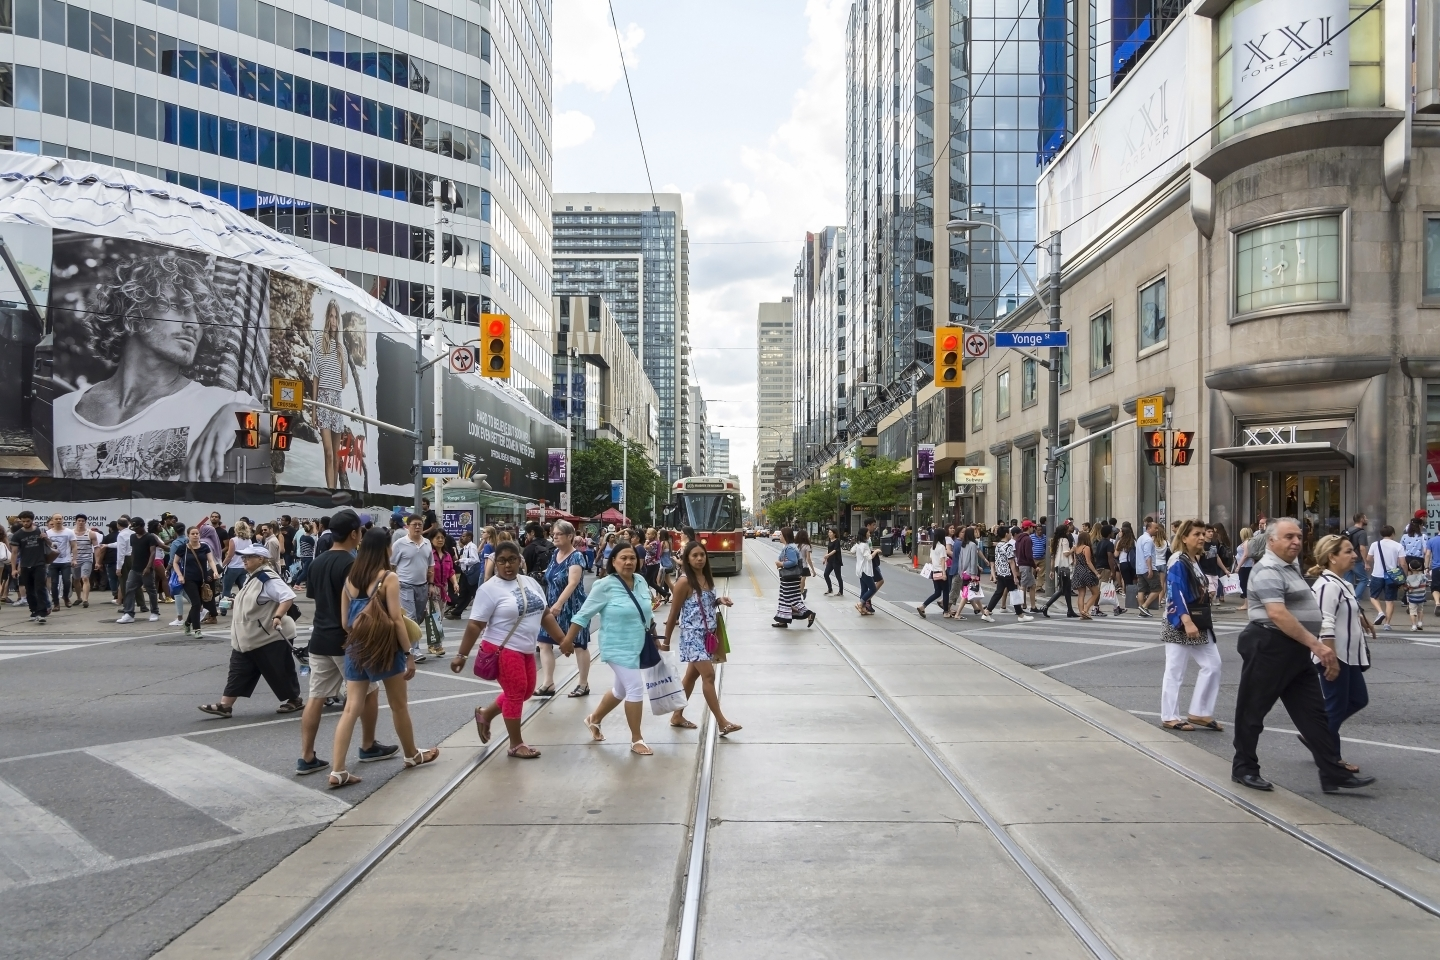 At 5.5 percent, Canada's unemployment rate has rarely been lower. (Shutterstock)